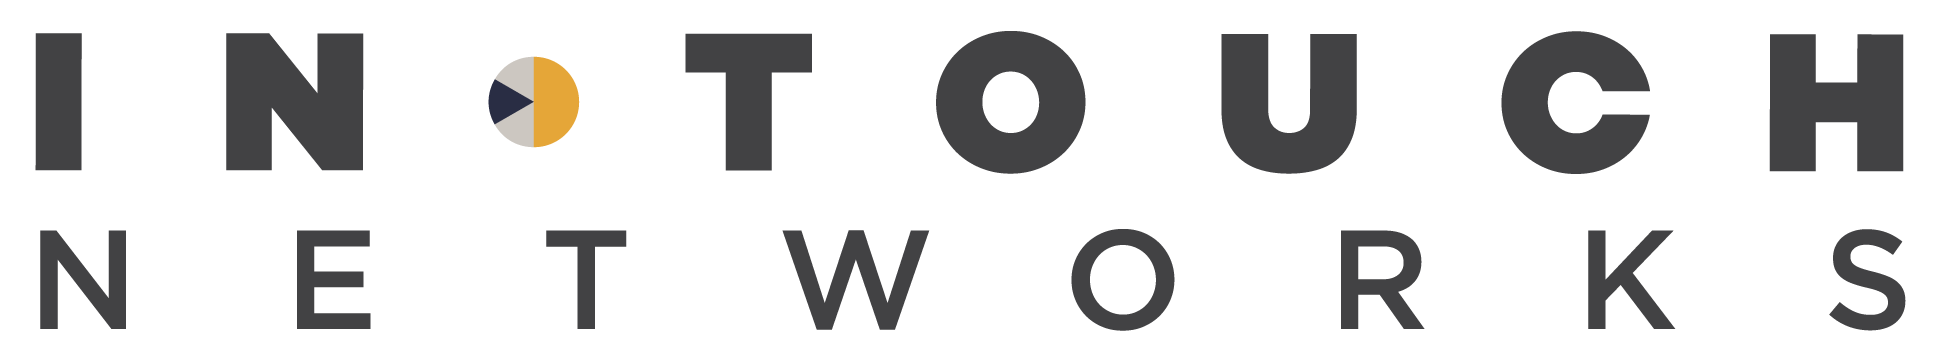 In-Touch-Networks-logo.png